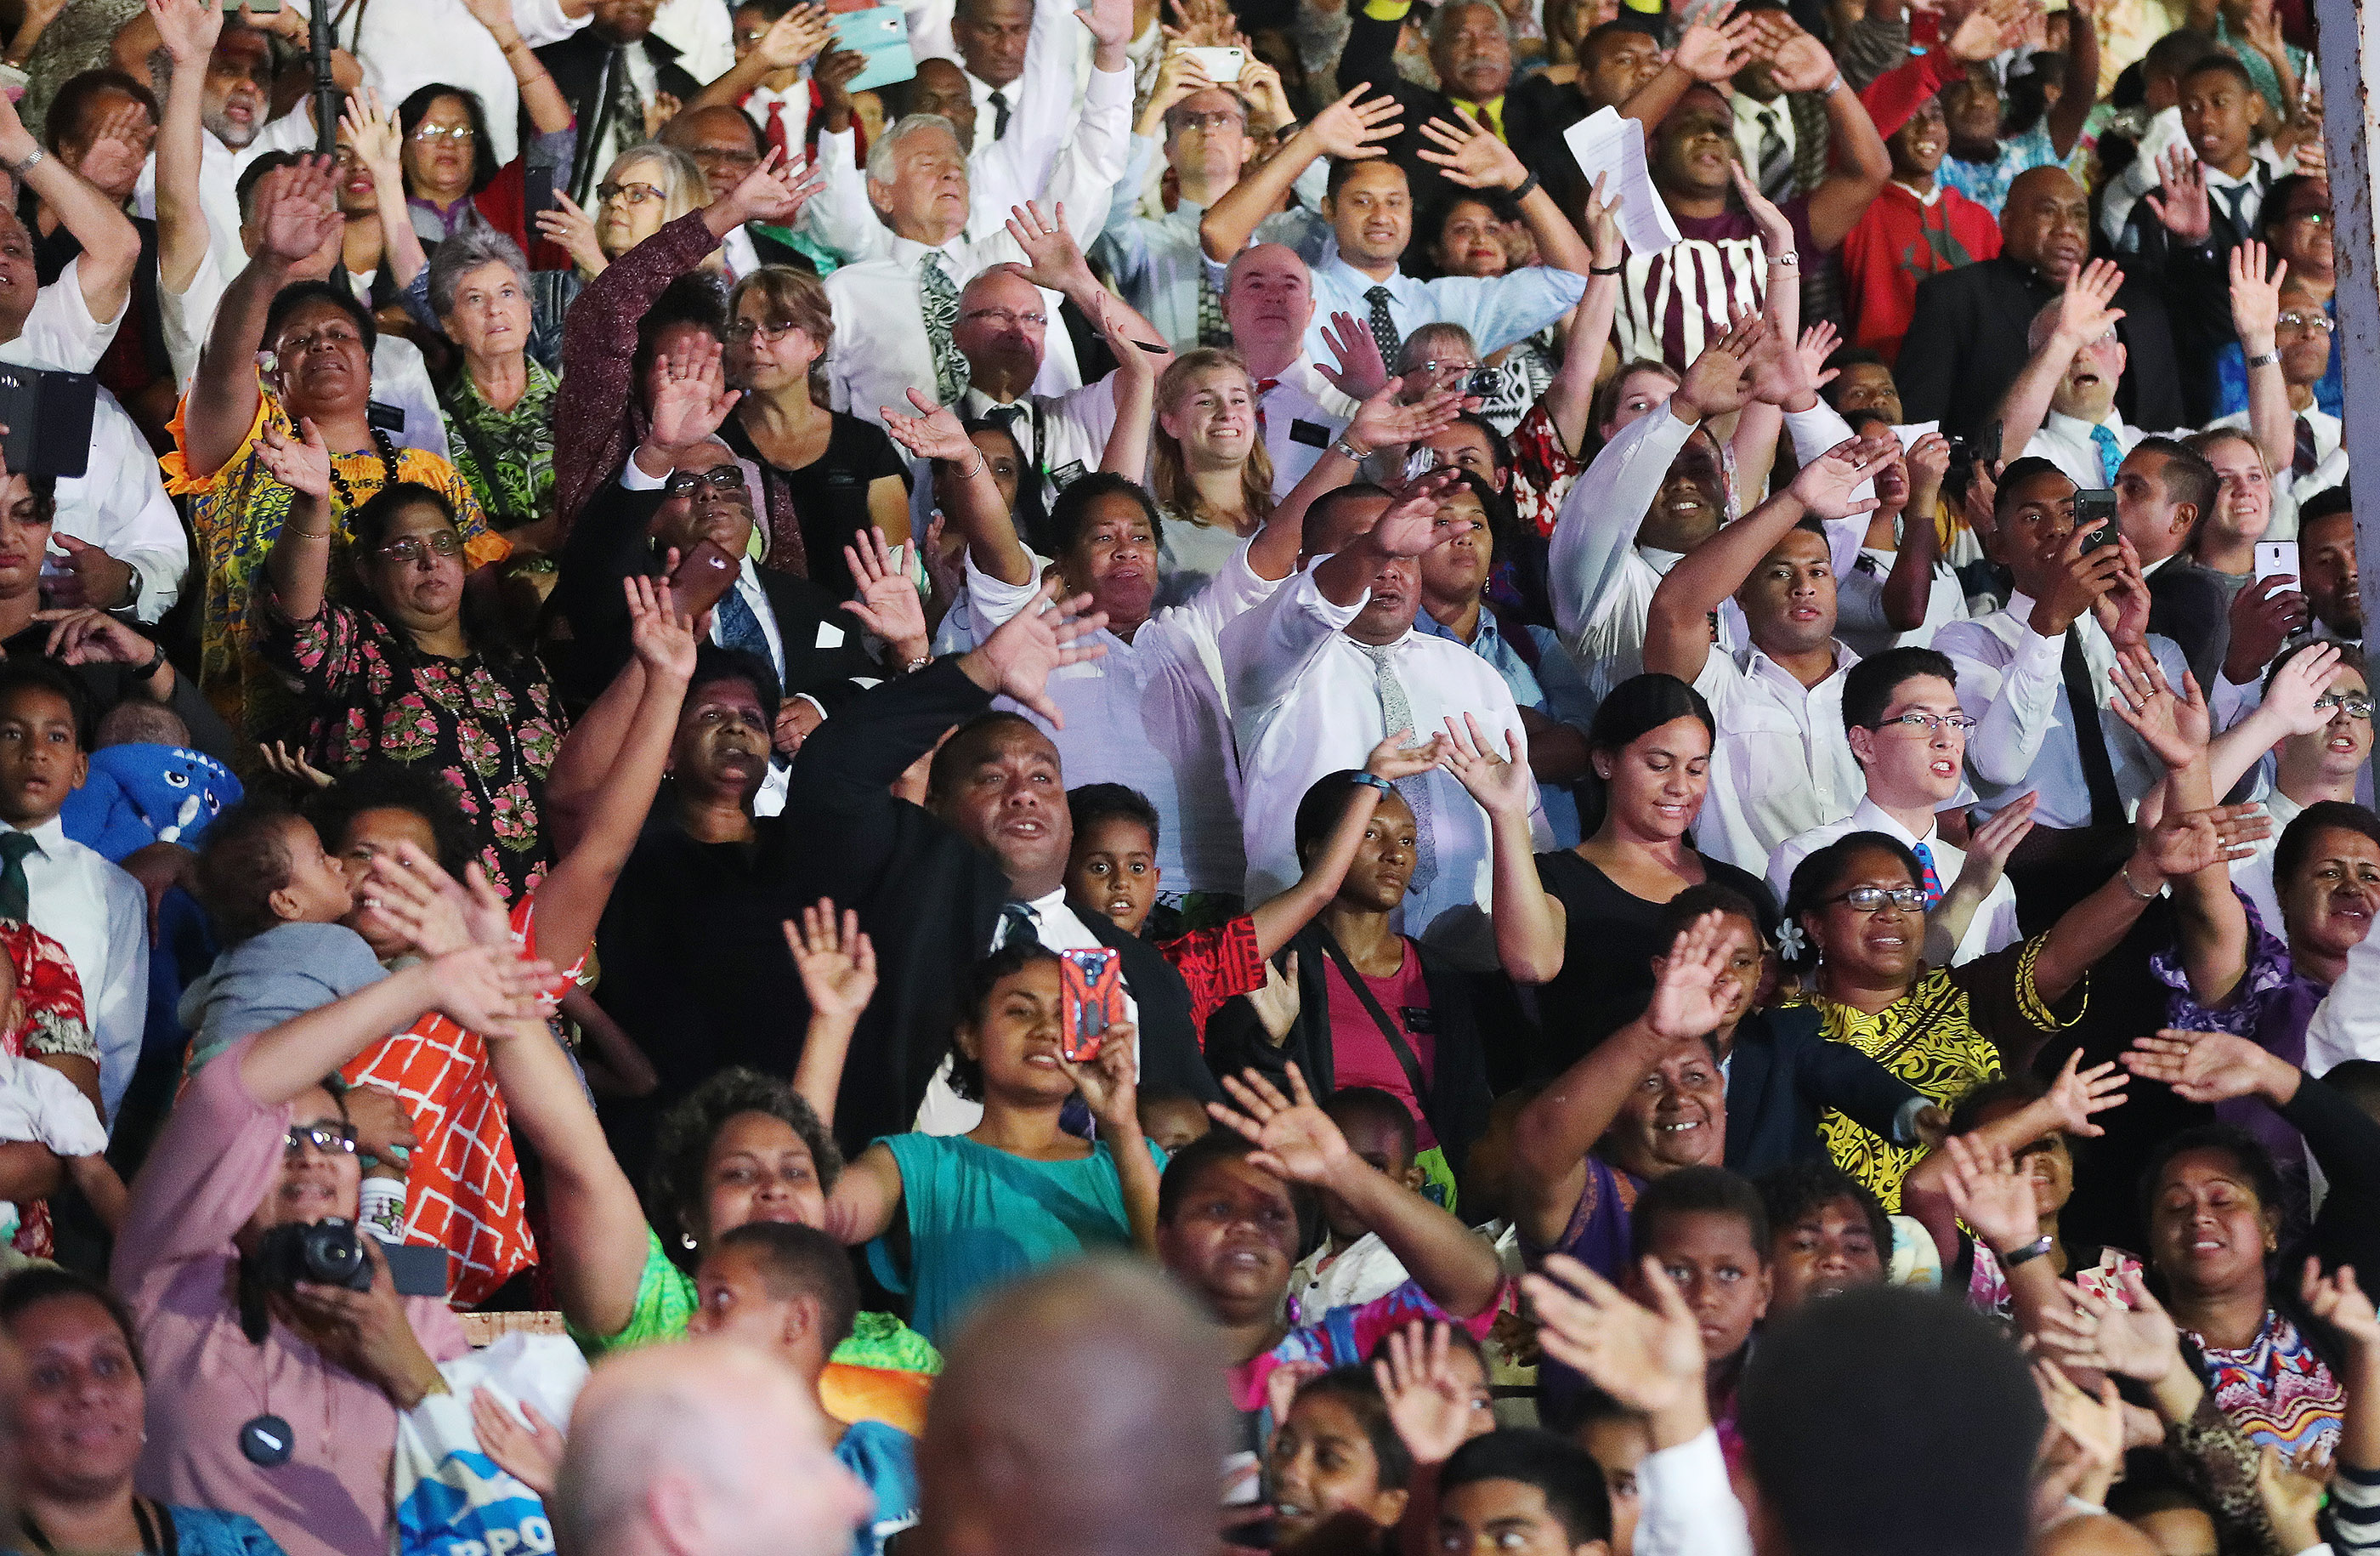 Attendees wave as President Russell M. Nelson of The Church of Jesus Christ of Latter-day Saints leaves after a devotional in Nausori, Fiji, on May 22, 2019.